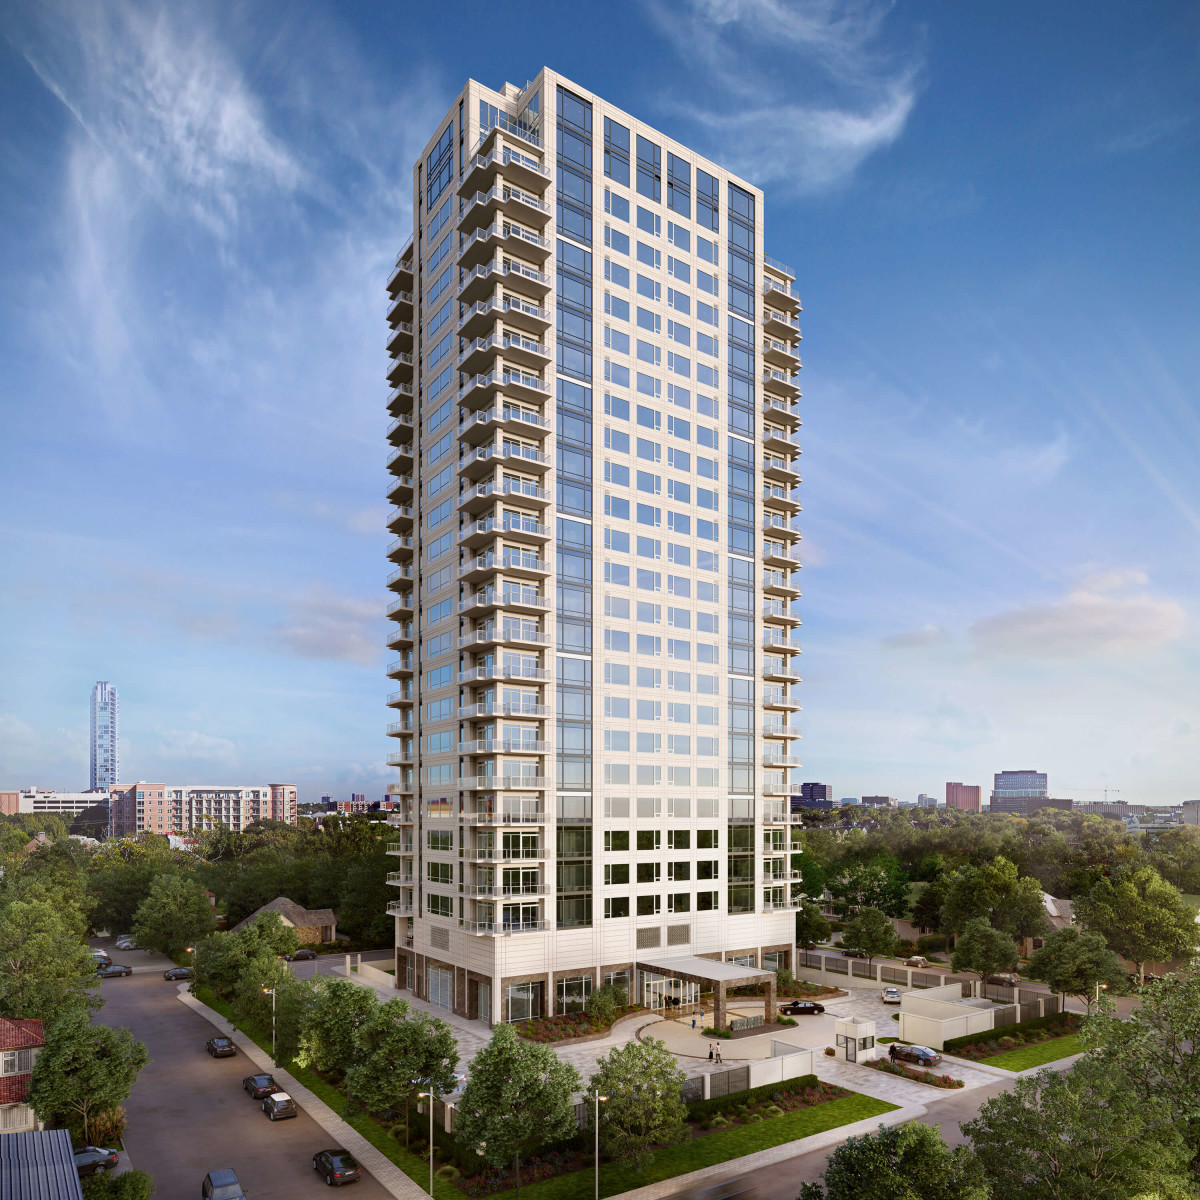 Developer Expands His Luxury Brand Of High-rise Living To